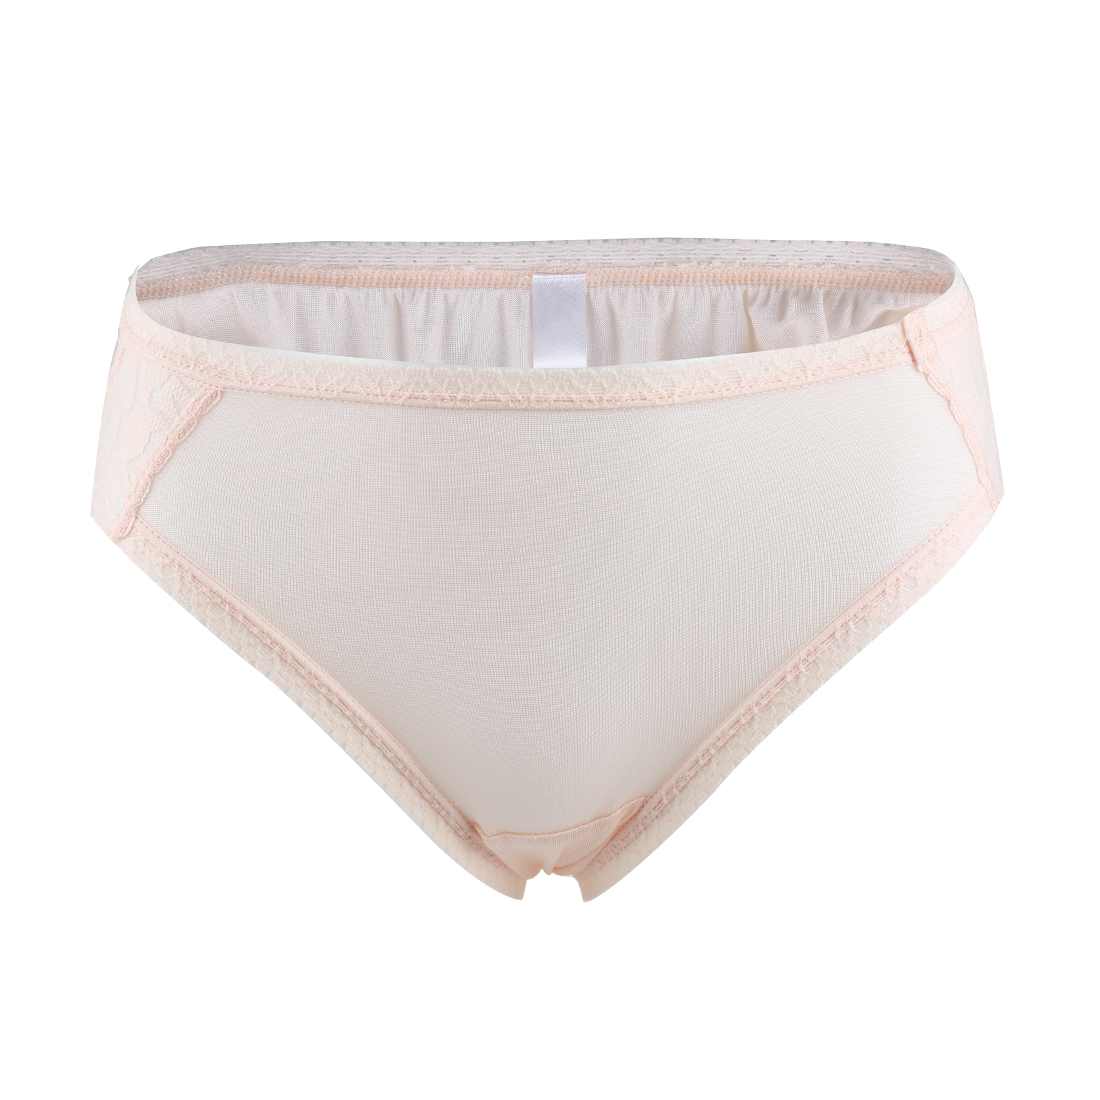 Women Natural Silk Laced Breathable Translucent Hi-Cut Panties Light Pink Large